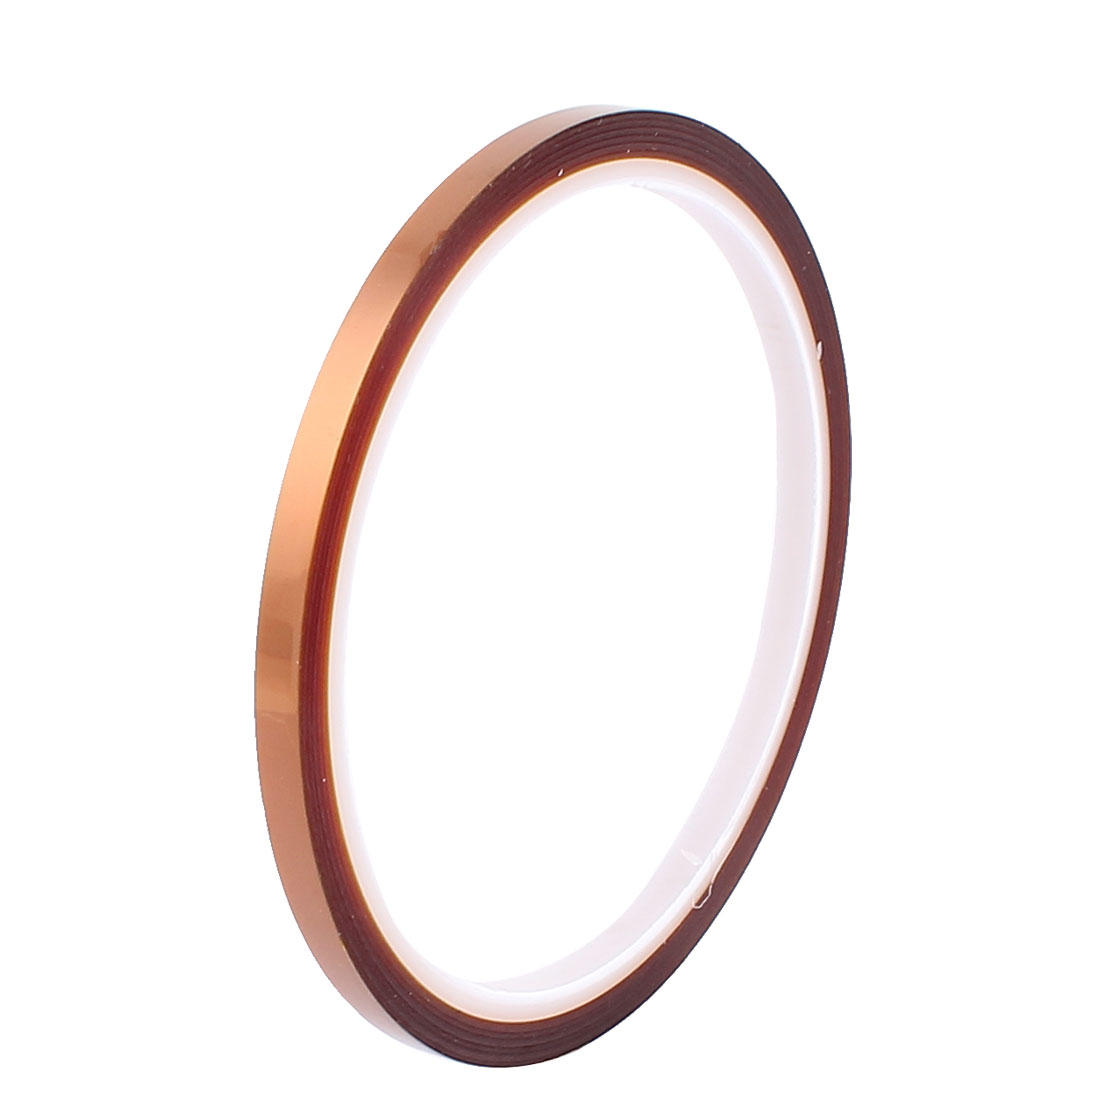 0.5CM Width 30M Long Kapton Tape High Temperature Heat Resistant Polyimide